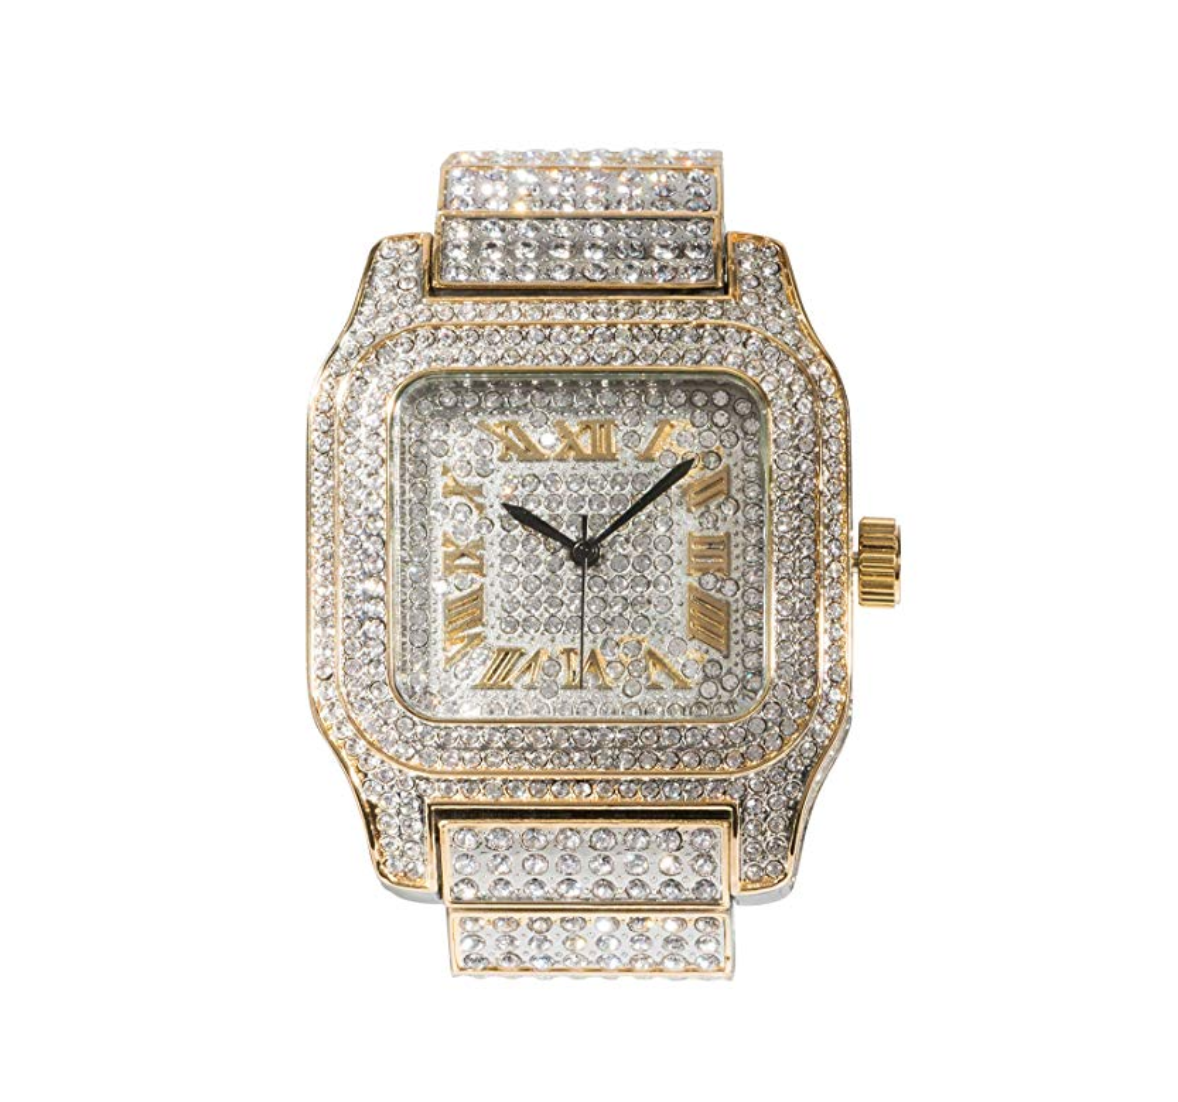 2 Tone Silver & Gold Watch Diamonds Cartier Face Bust Down Watch Hip Hop Bling Jewelry